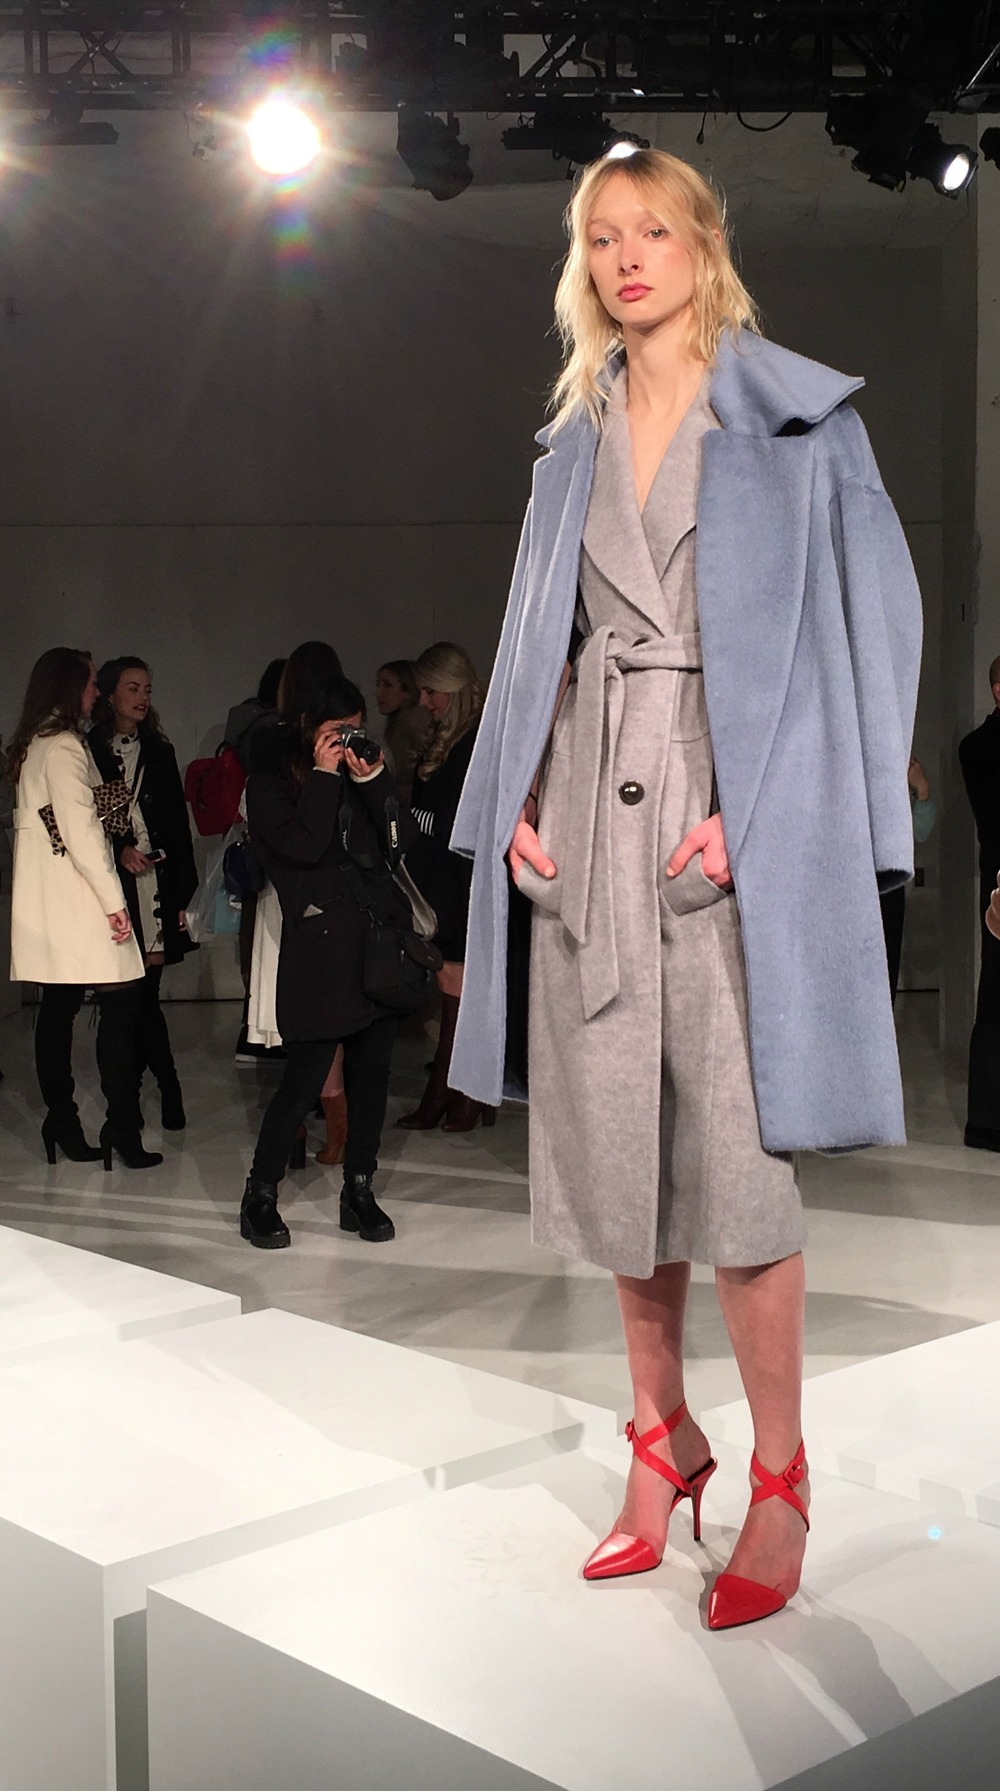 NYFW O'2nd Fashion Presentation Fall Winter 2016 Louboutins & Love Fashion Blog Esther Santer NYC Street Style Models Collection Hair Trends Pretty Inspo Press Event Coverage Photos Details Blue Coat Button Down New York City Dress Fur Grey Red Heels.jpg